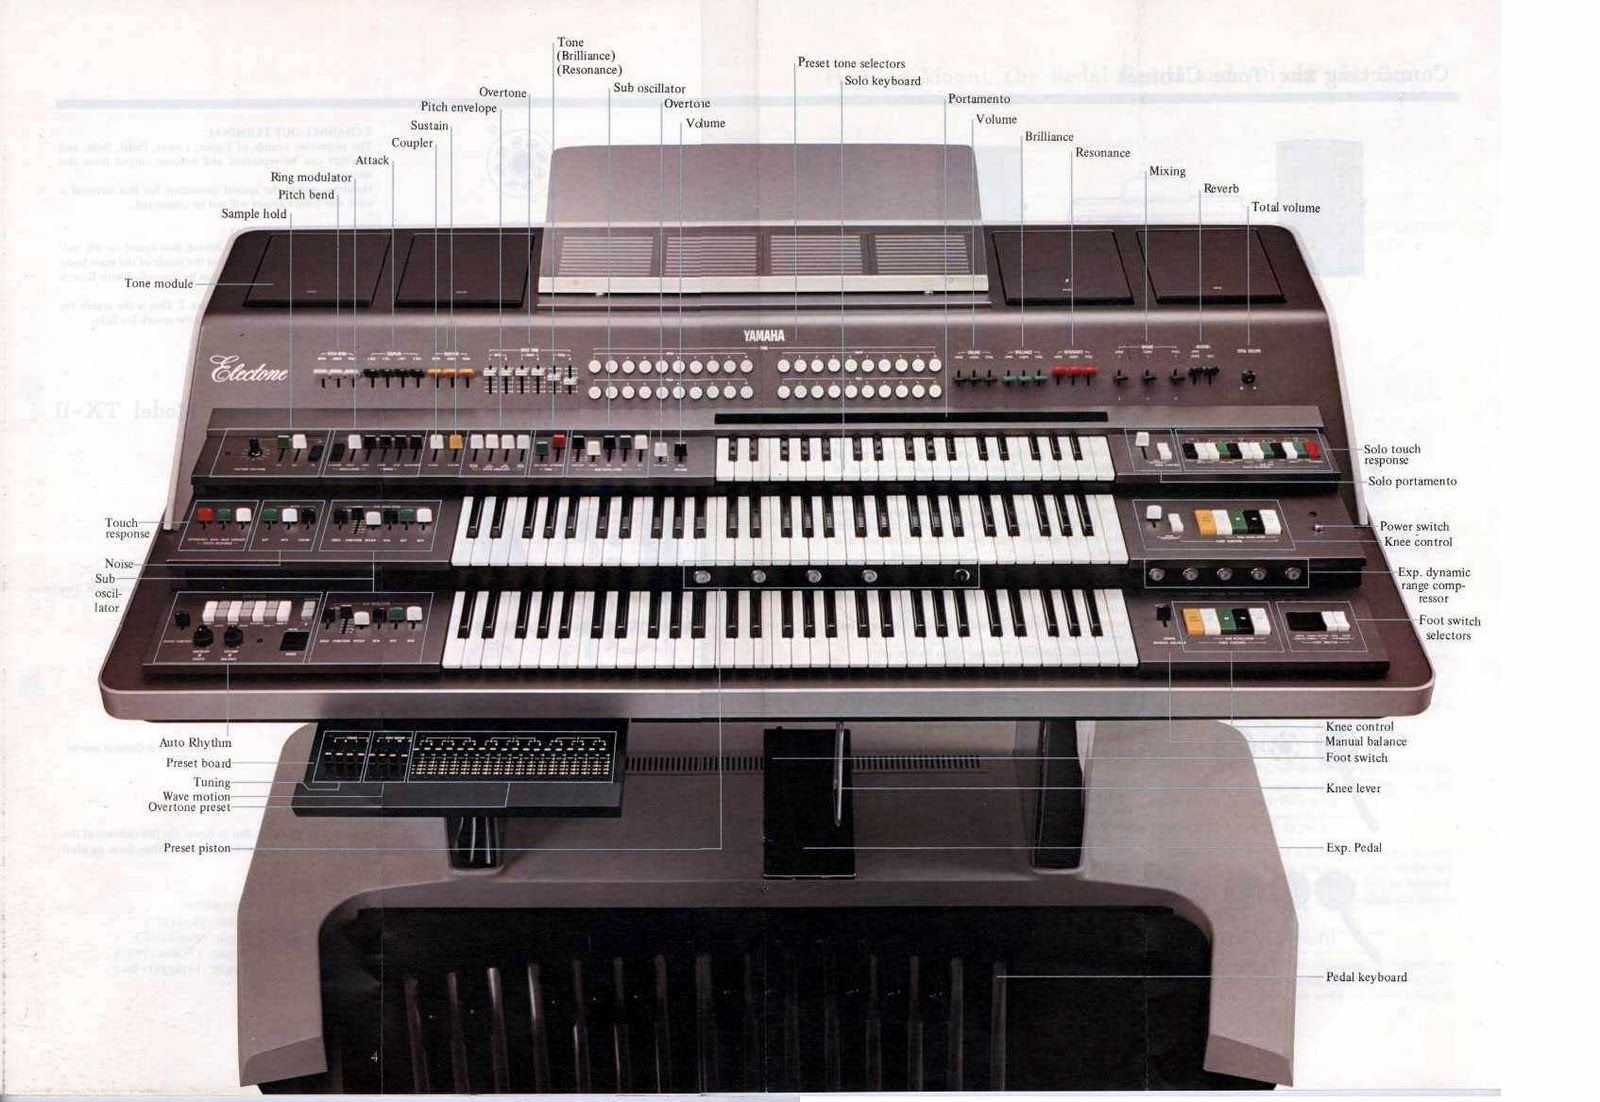 The legendary Yamaha GX-1. USed by Stevie Wonder and Keith Emerson, among few others.